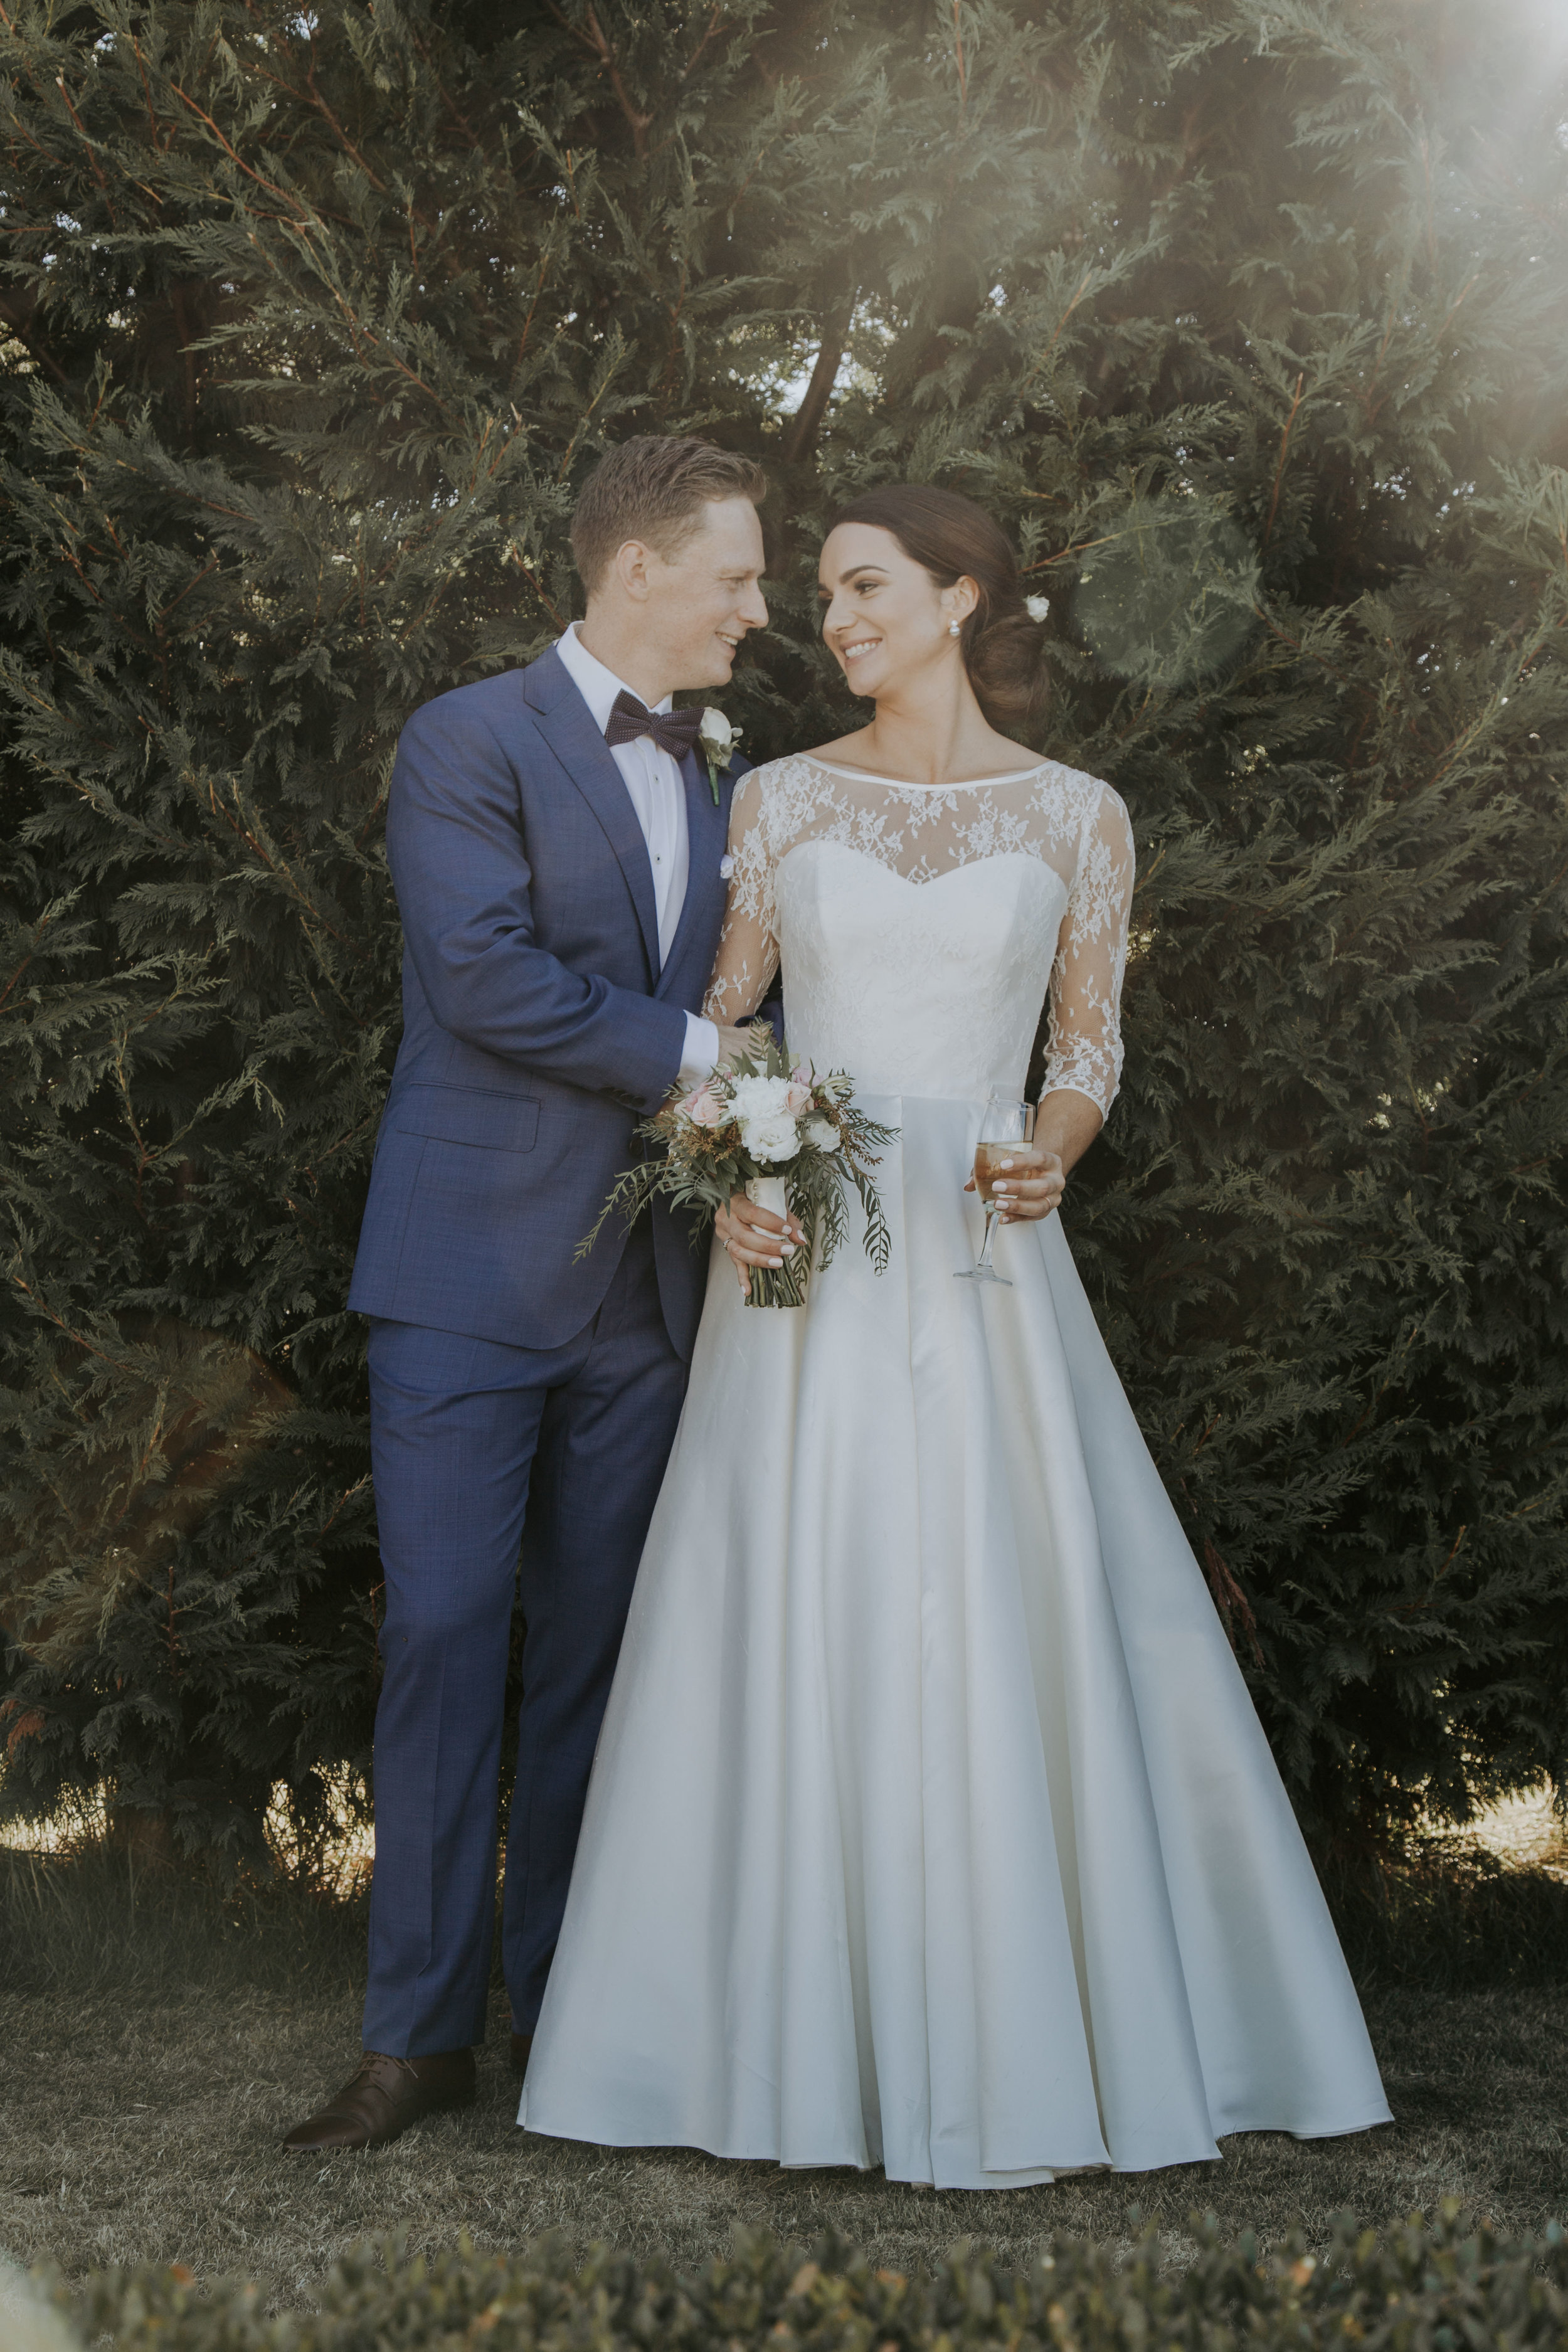 """KIRSTY + GARETH - """"Thank you Naomi for capturing our day so perfectly. The photos are absolutely gorgeous and you were a pleasure to deal with before, during and after. The photos are beautifully presented and we love the engraved USB stick. Would not hesitate to recommend your services."""""""